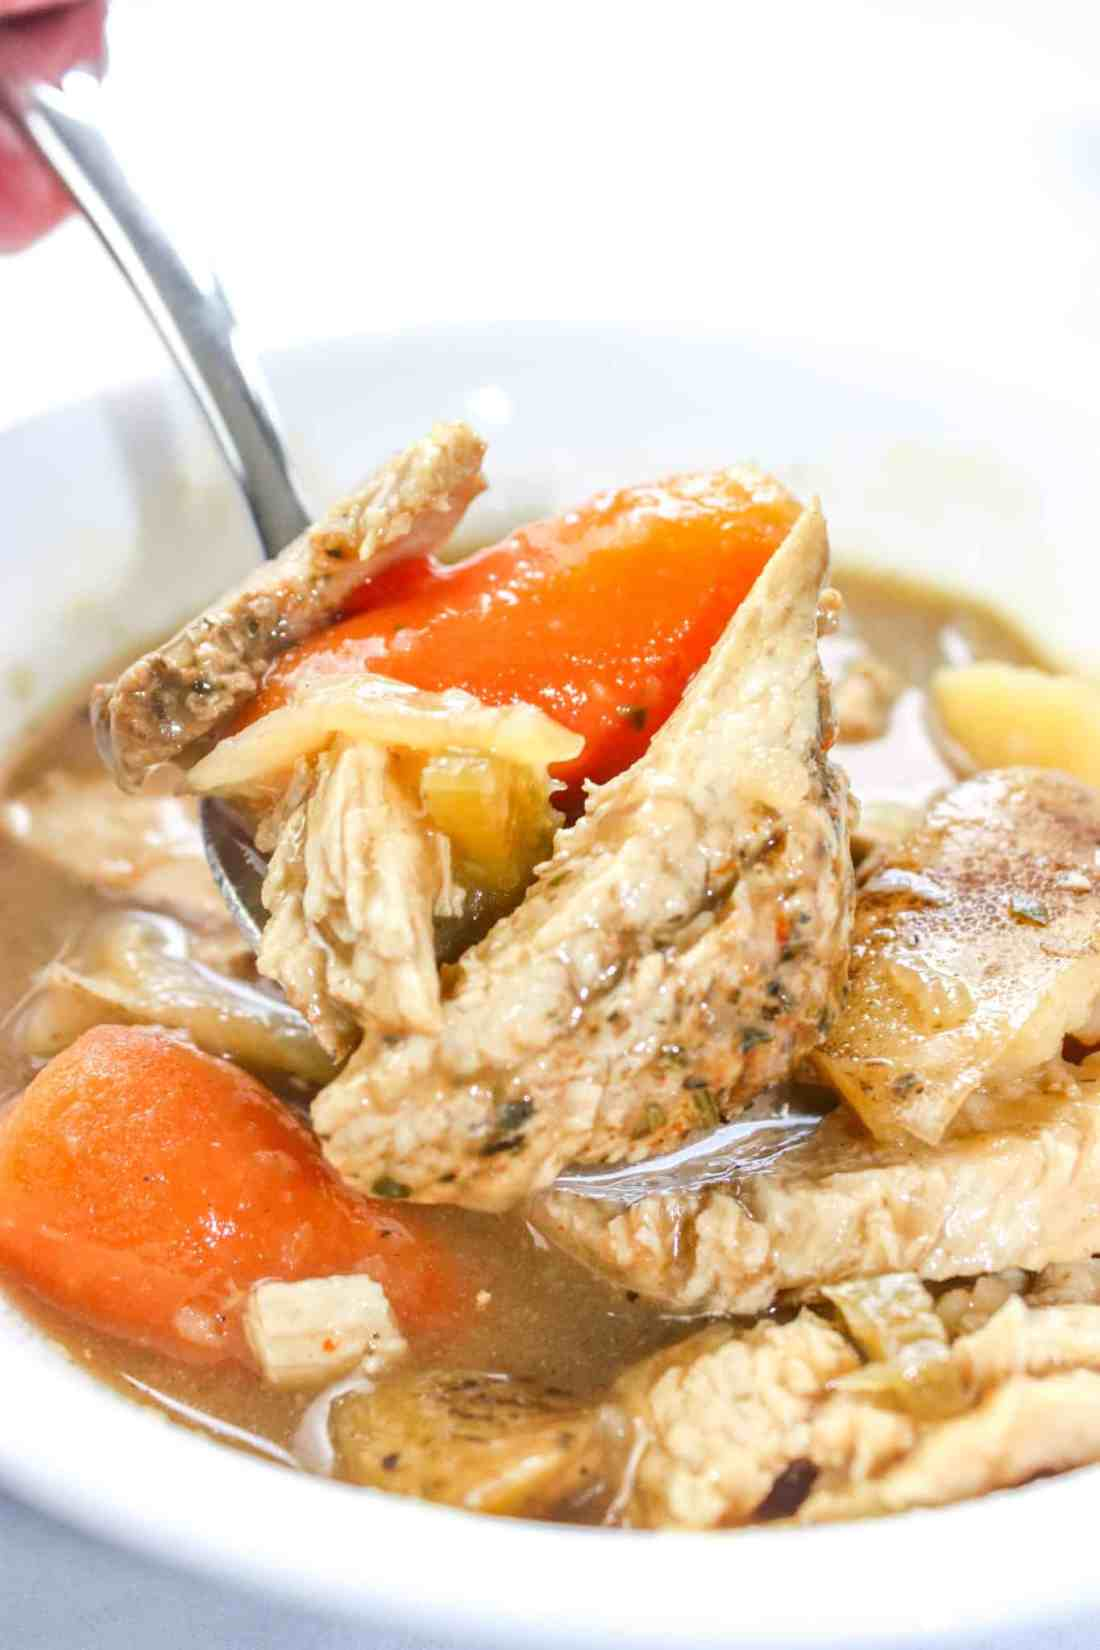 Instant Pot Wild Turkey Stew is a hearty gluten free stew recipe loaded with turkey and vegetables in a thick gravy.